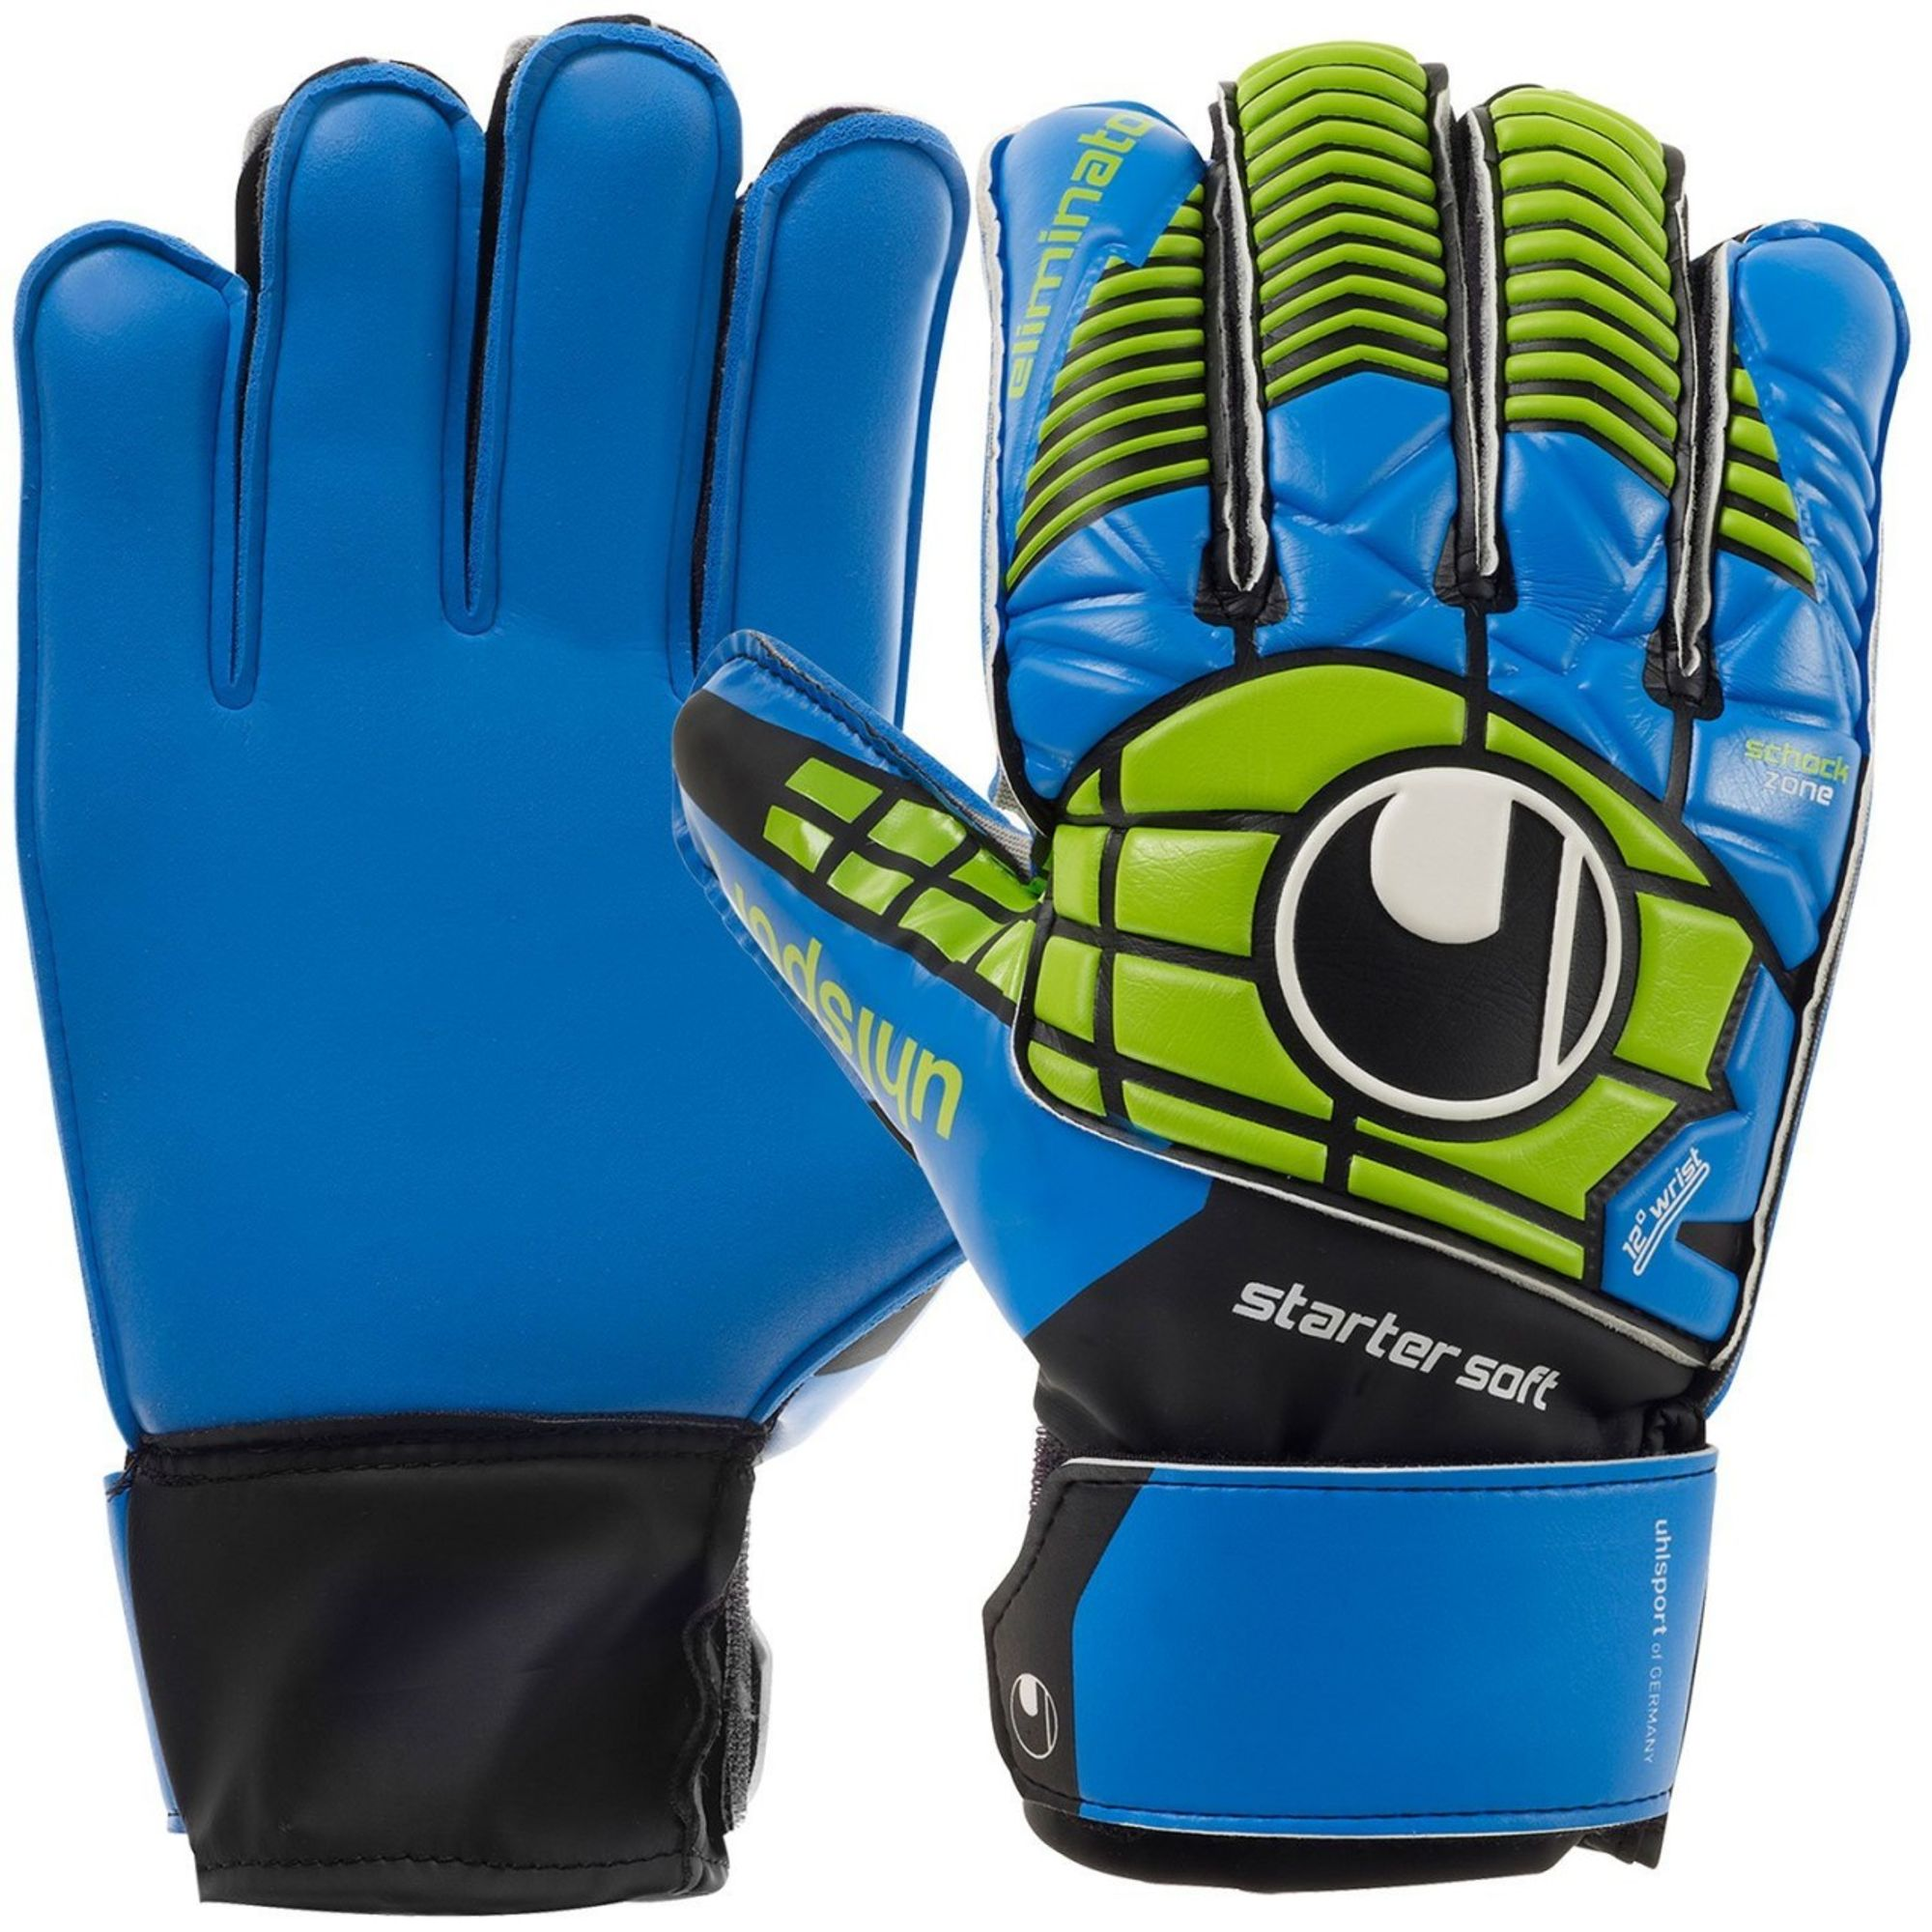 "Uhlsport Torwarthandschuh ""Eliminator Starter Soft"" - schwarz/blau/power grün"